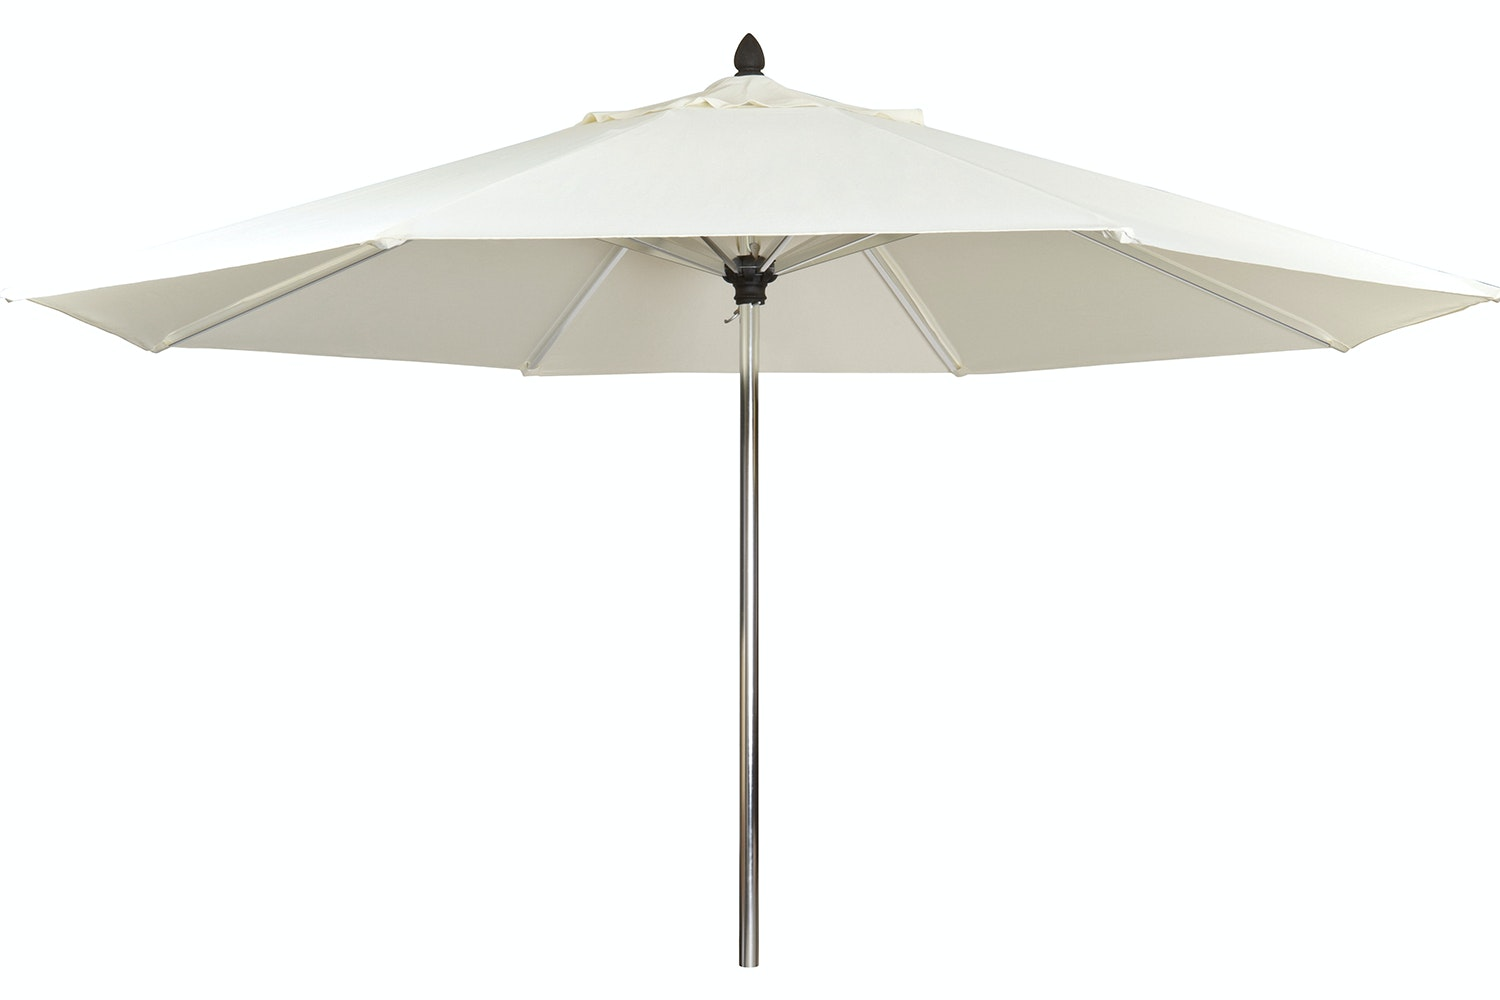 Triton 2.7m Natural Outdoor Umbrella by Peros